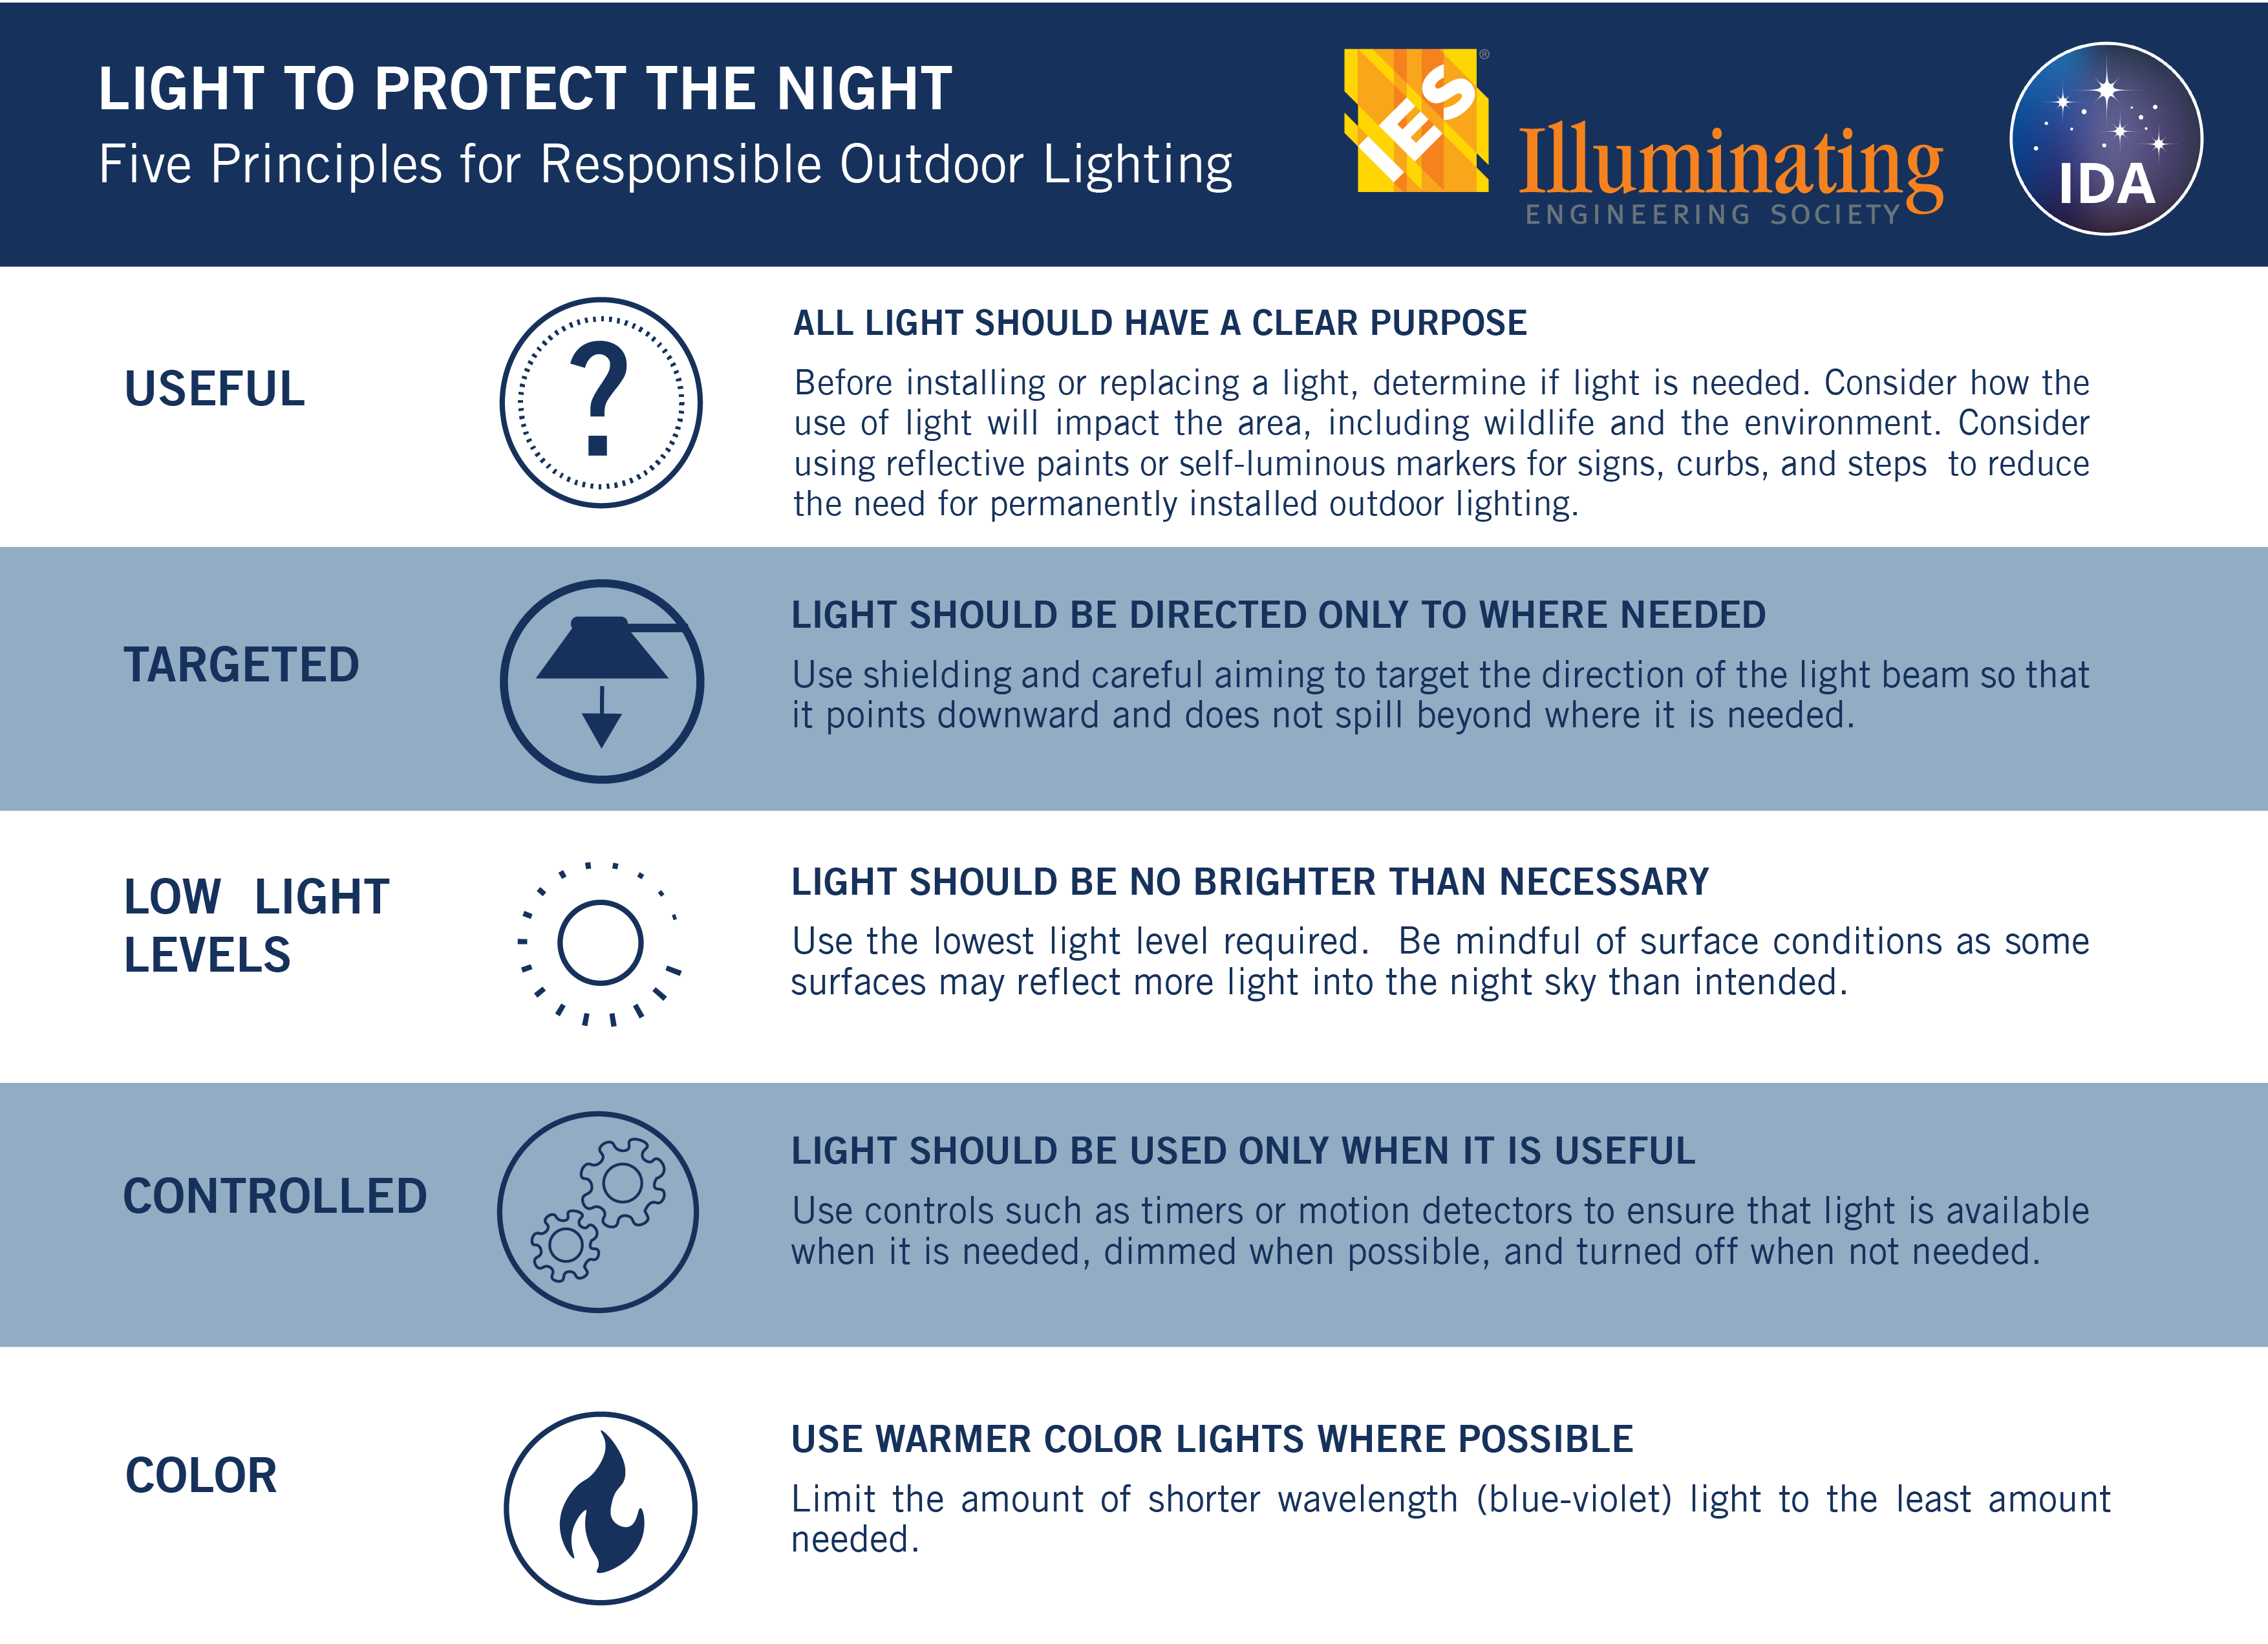 Light-to-Protect-the-Night-Five-Principles-for-Responsible-Outdoor-Lighting